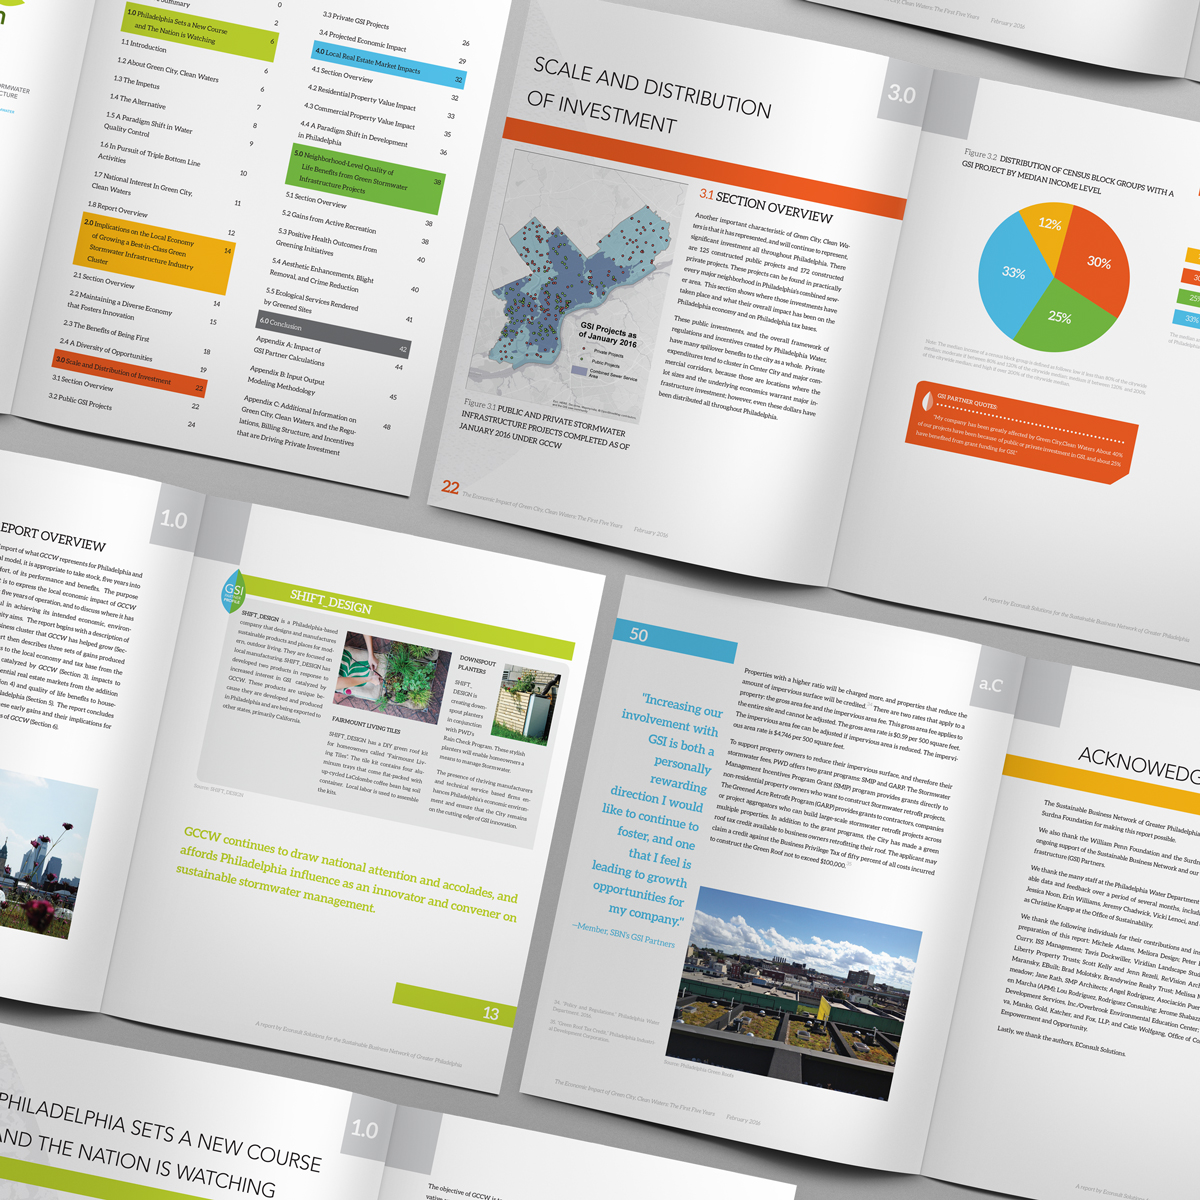 more of the 2015 Report for the Sustainable Business Network